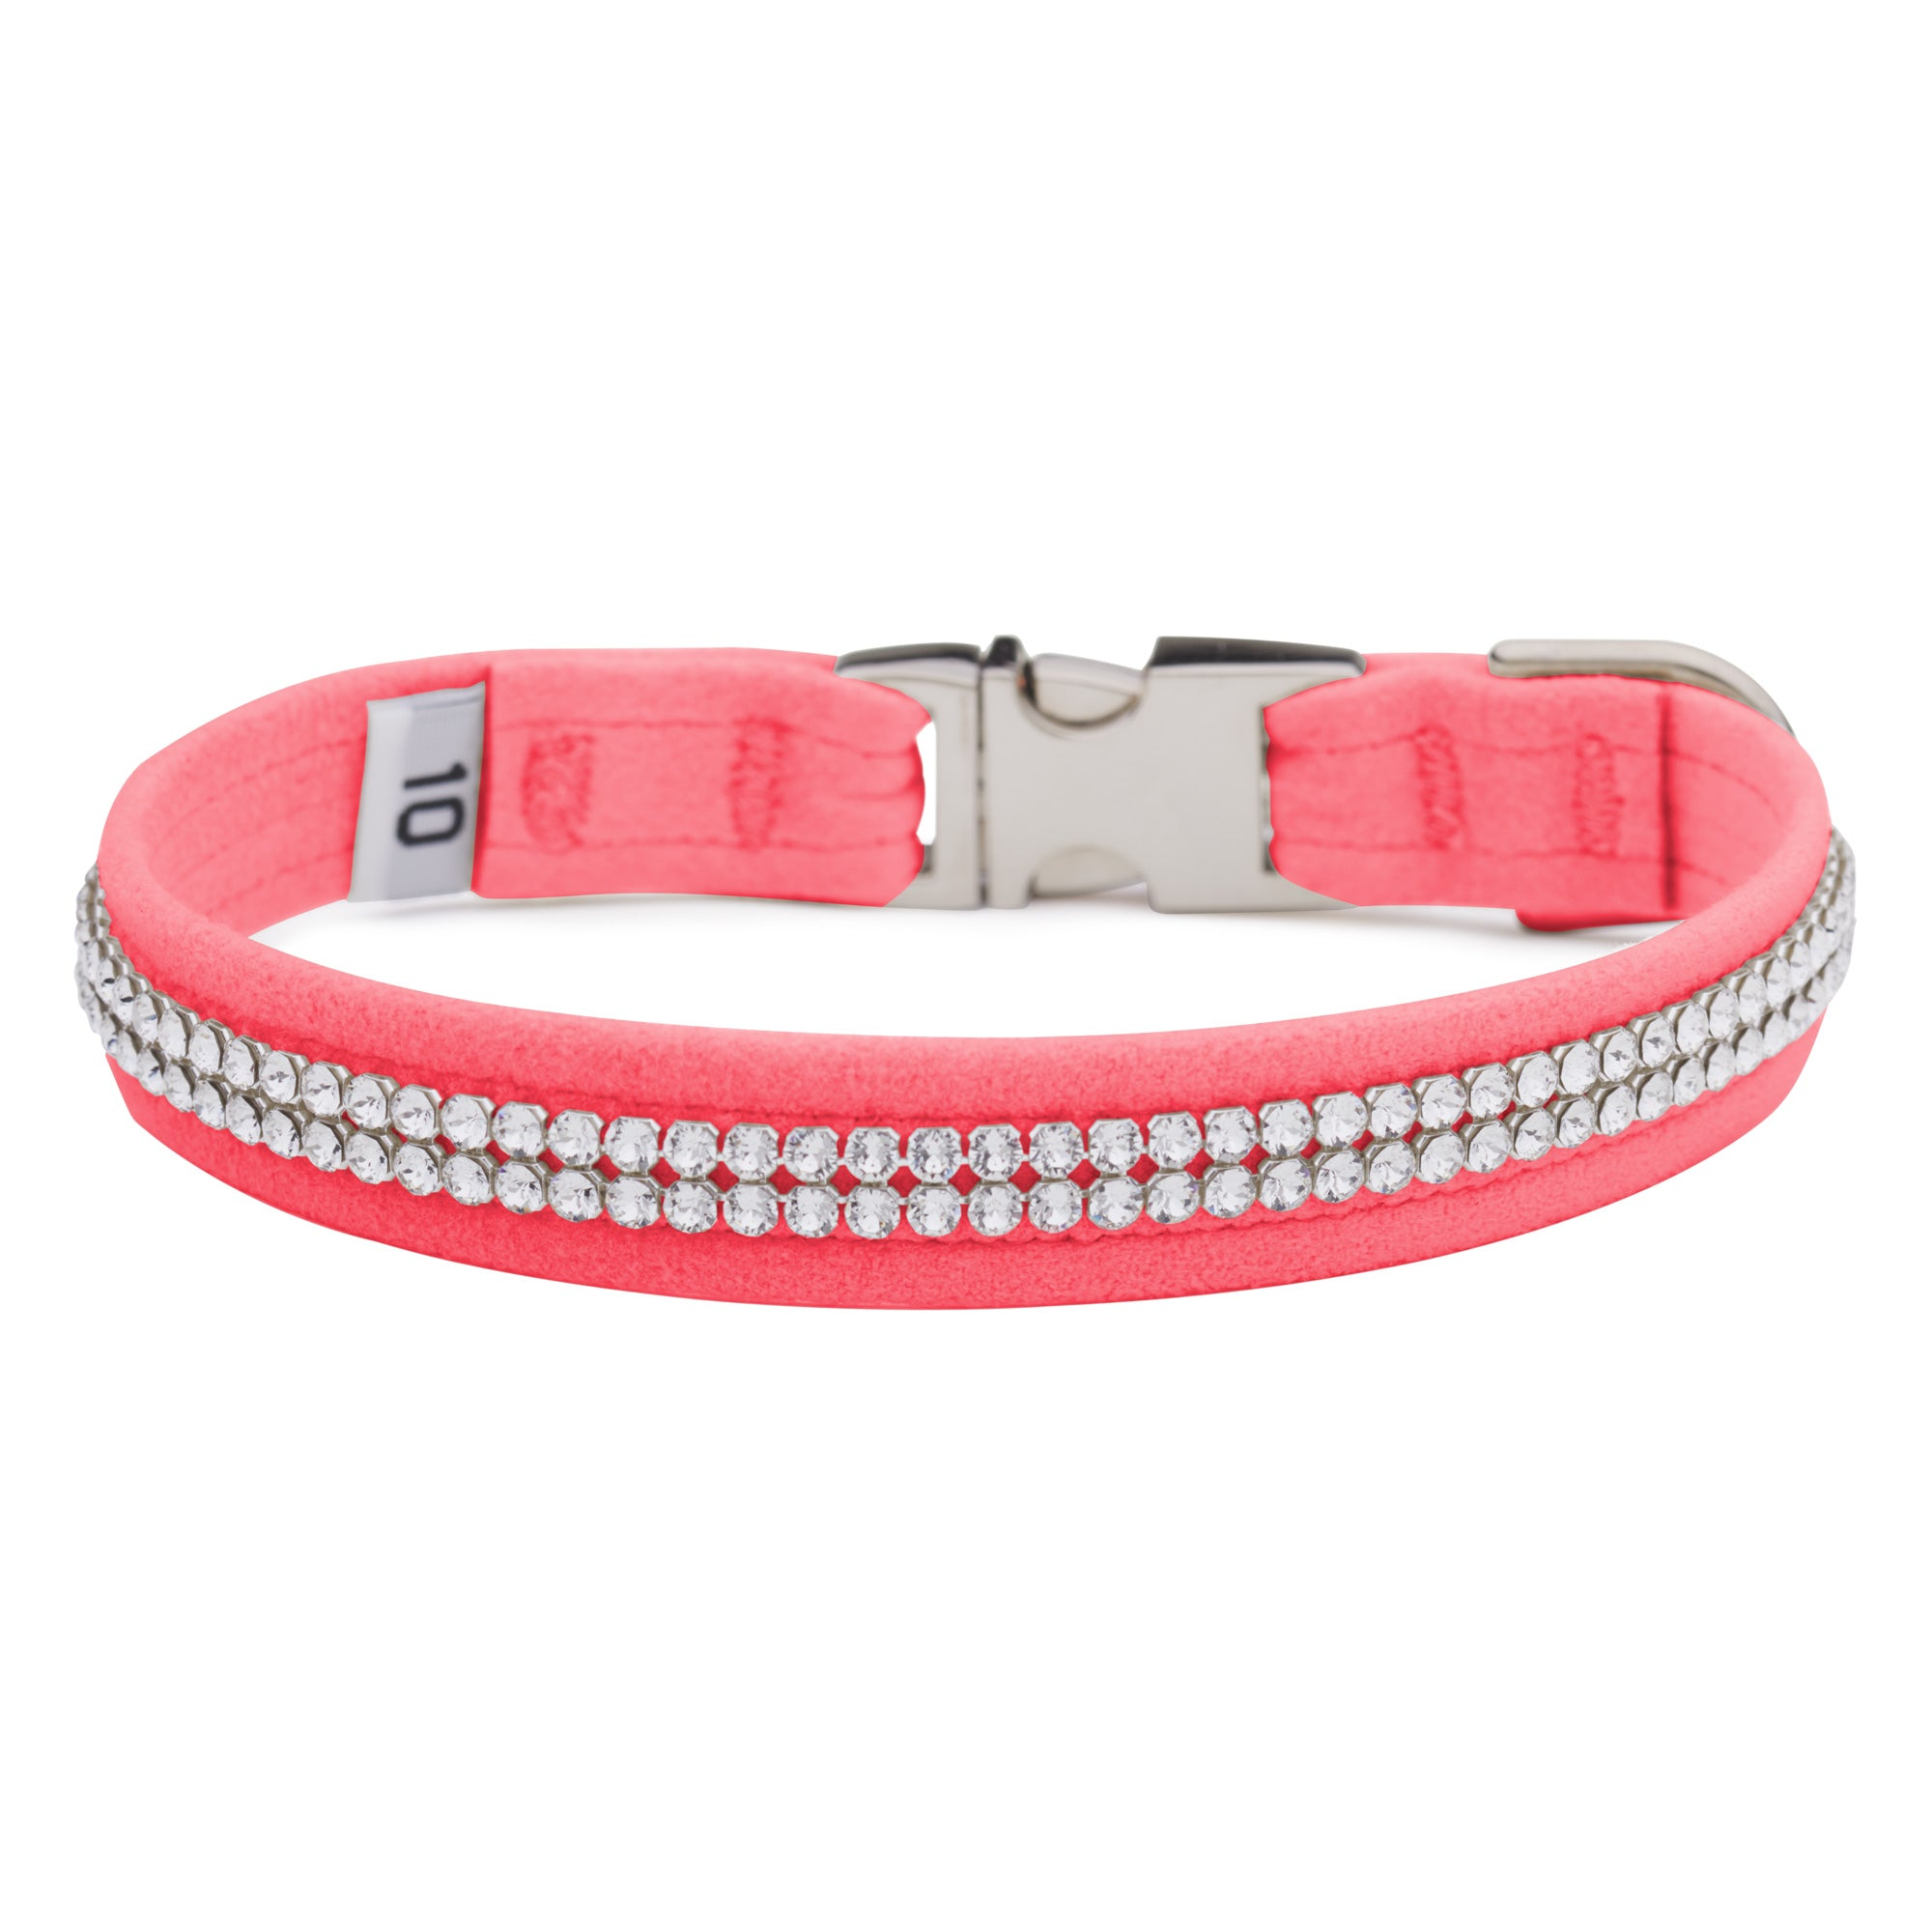 Perfect Pink 2 Row Giltmore Perfect Fit Collar